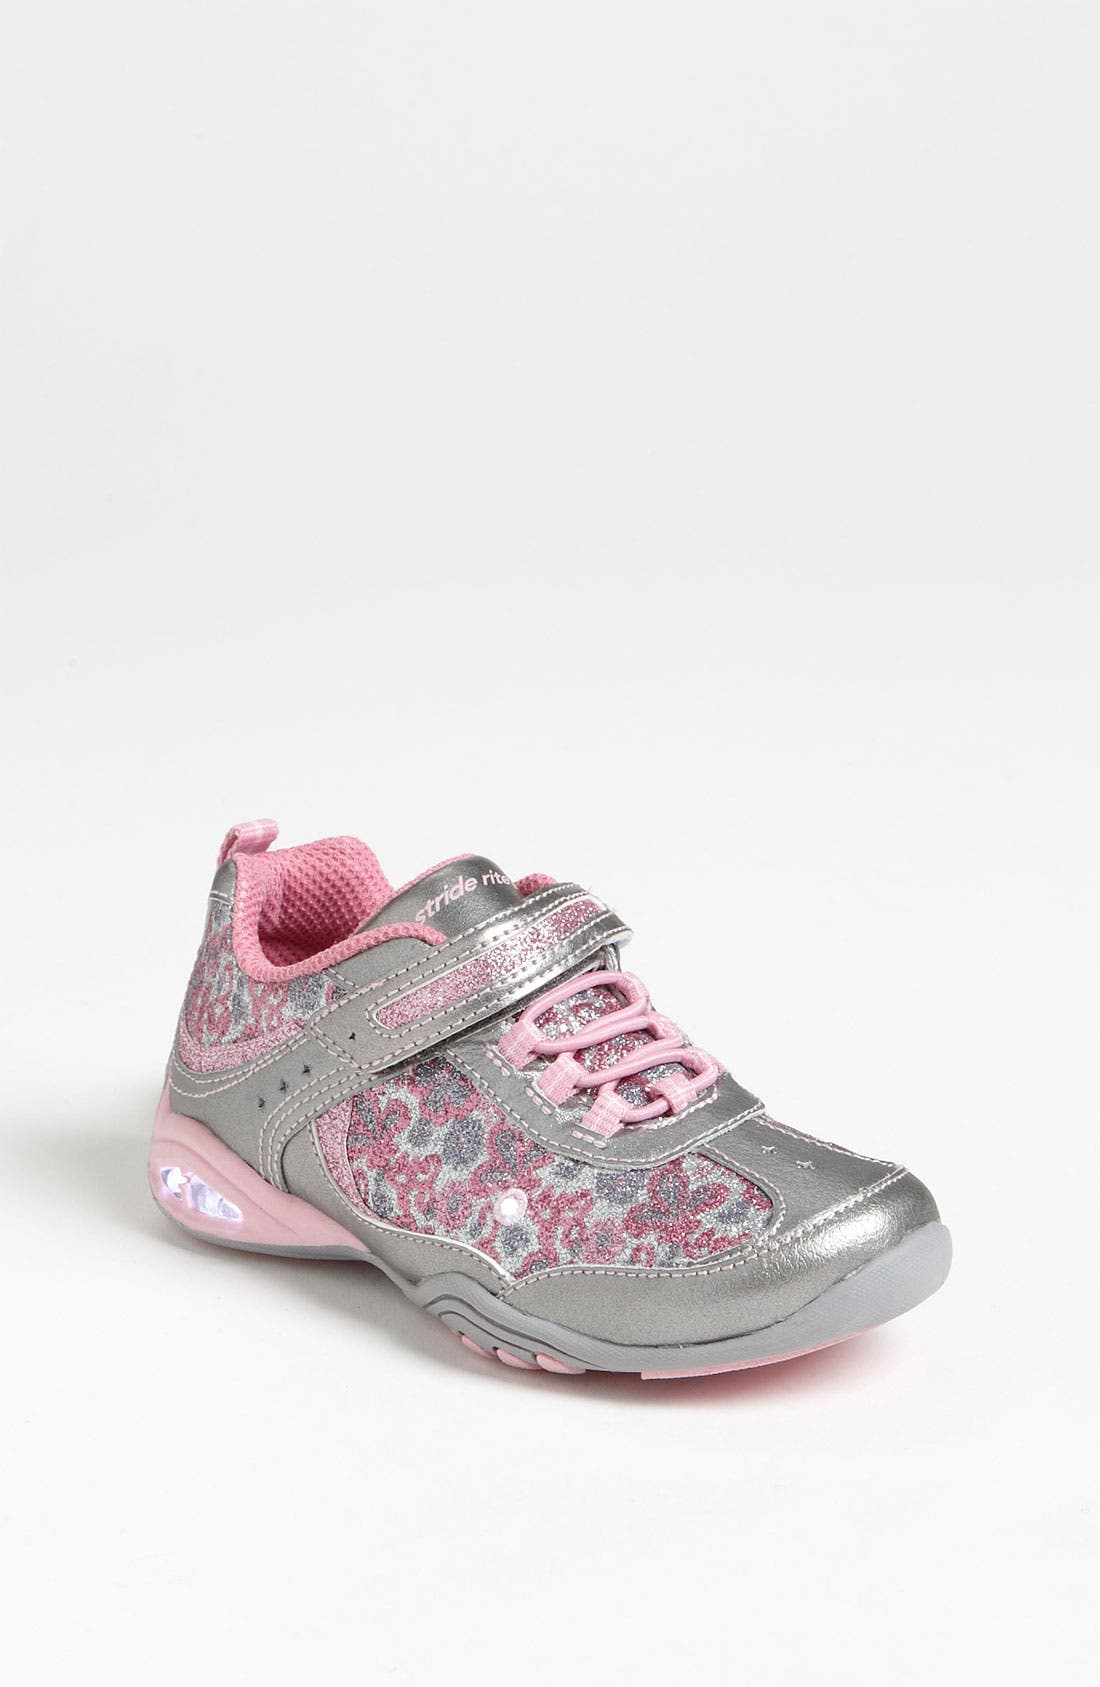 Main Image - Stride Rite 'Sierra' Sneaker (Walker, Toddler & Little Kid)